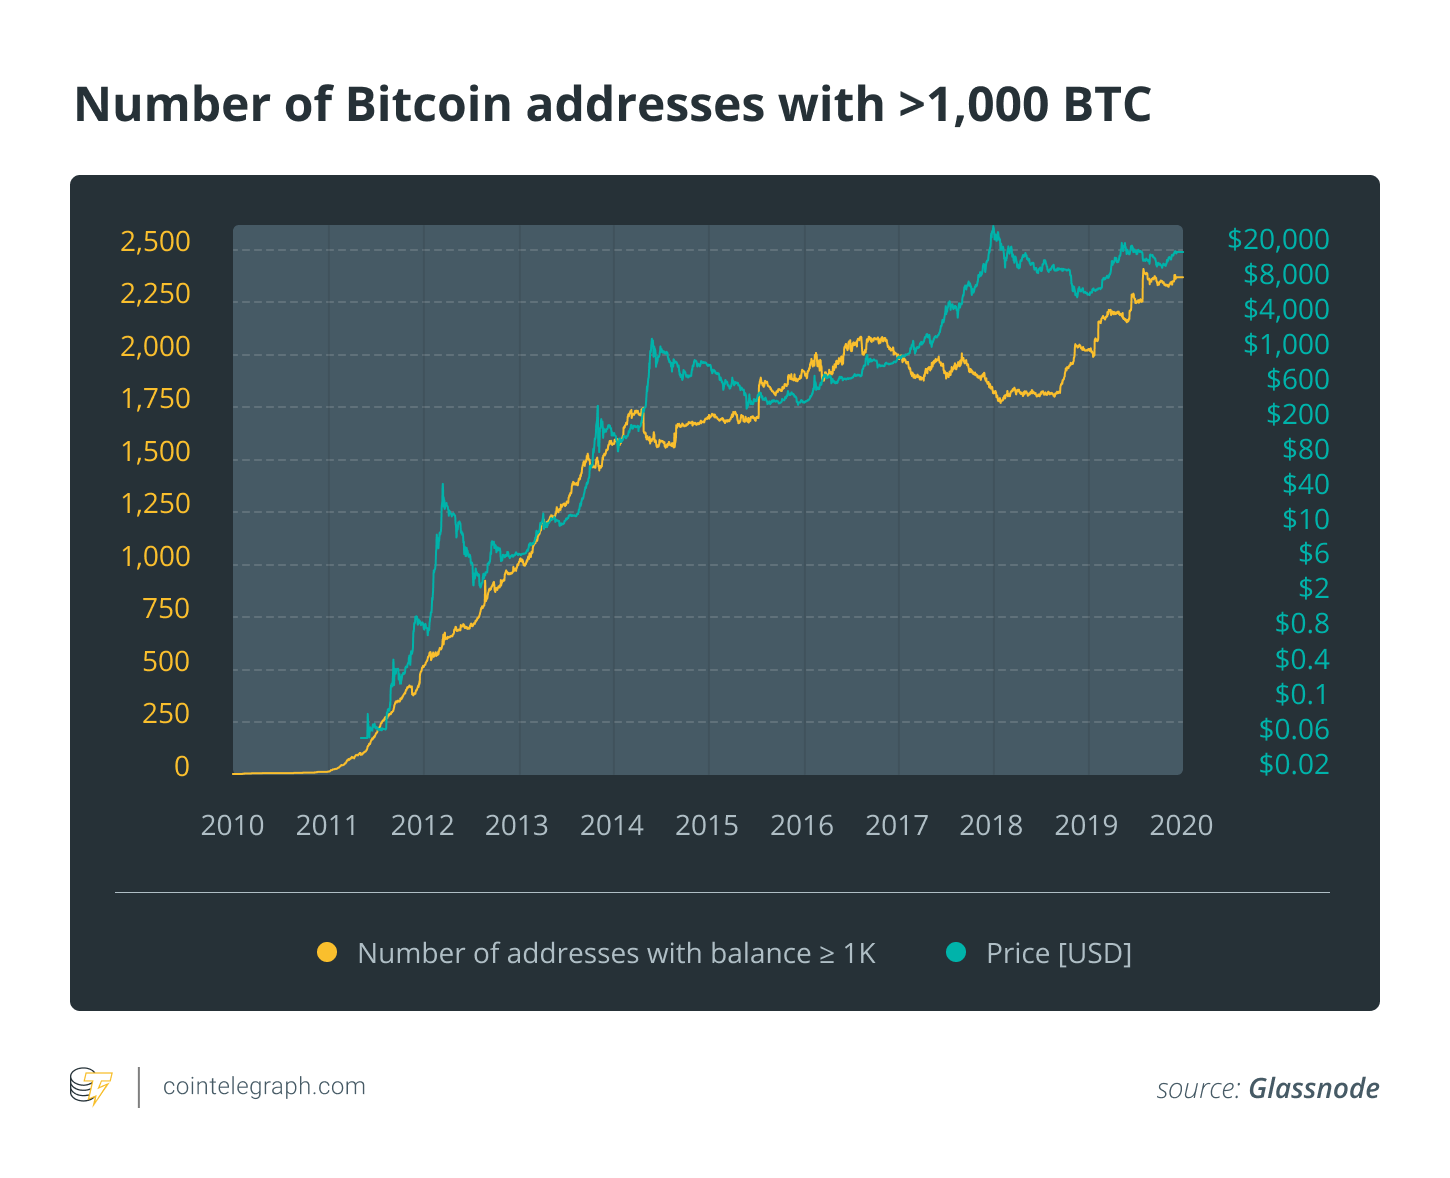 Number of Bitcoin addresses with >1,000 BTC